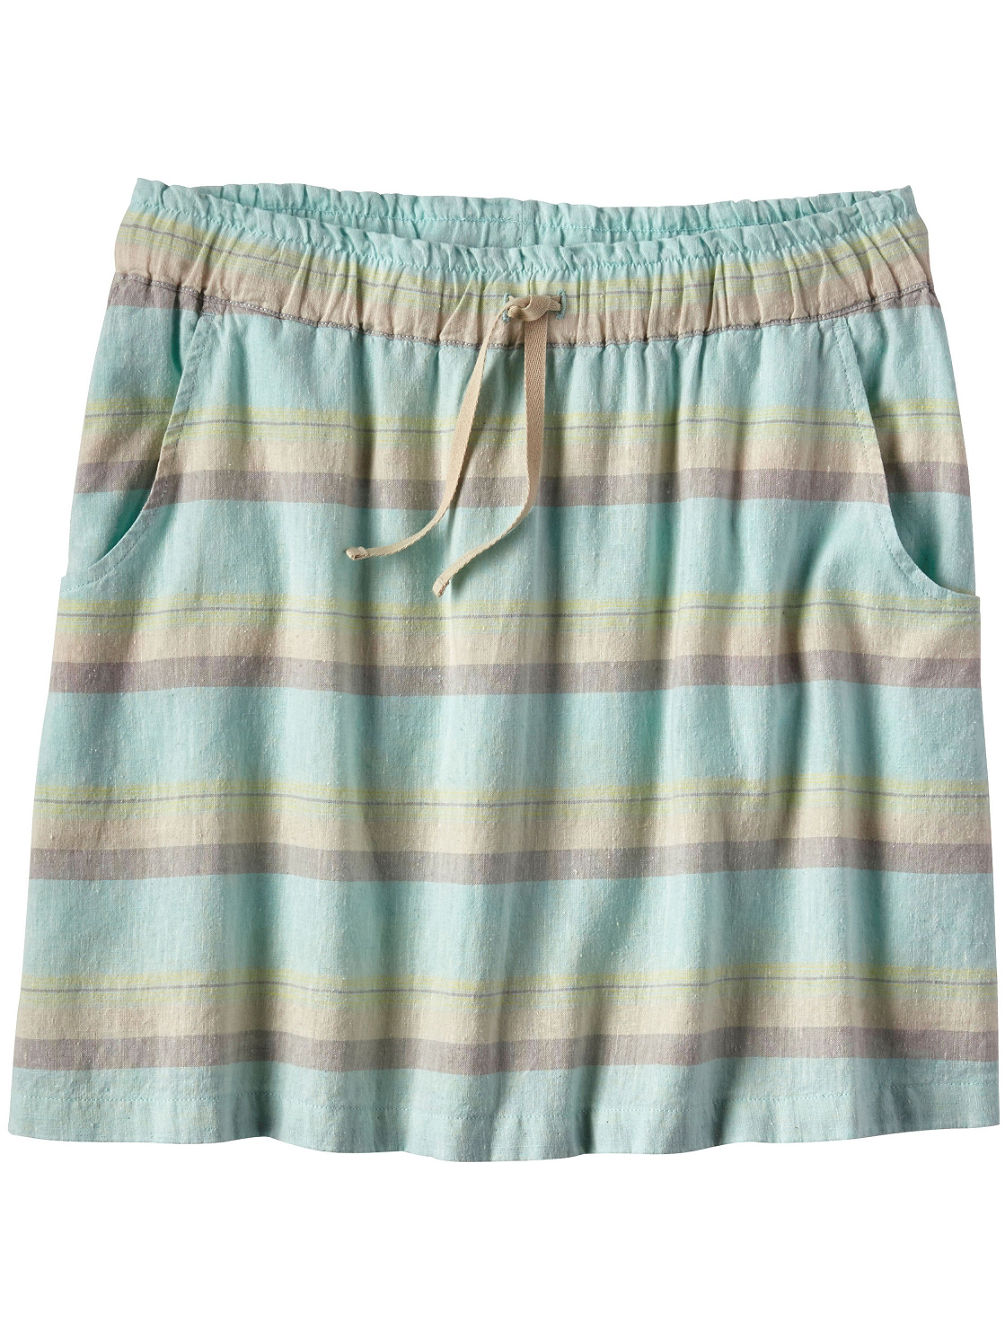 195bacbe6a Buy Patagonia Island Hemp Beach Skirt online at Blue Tomato